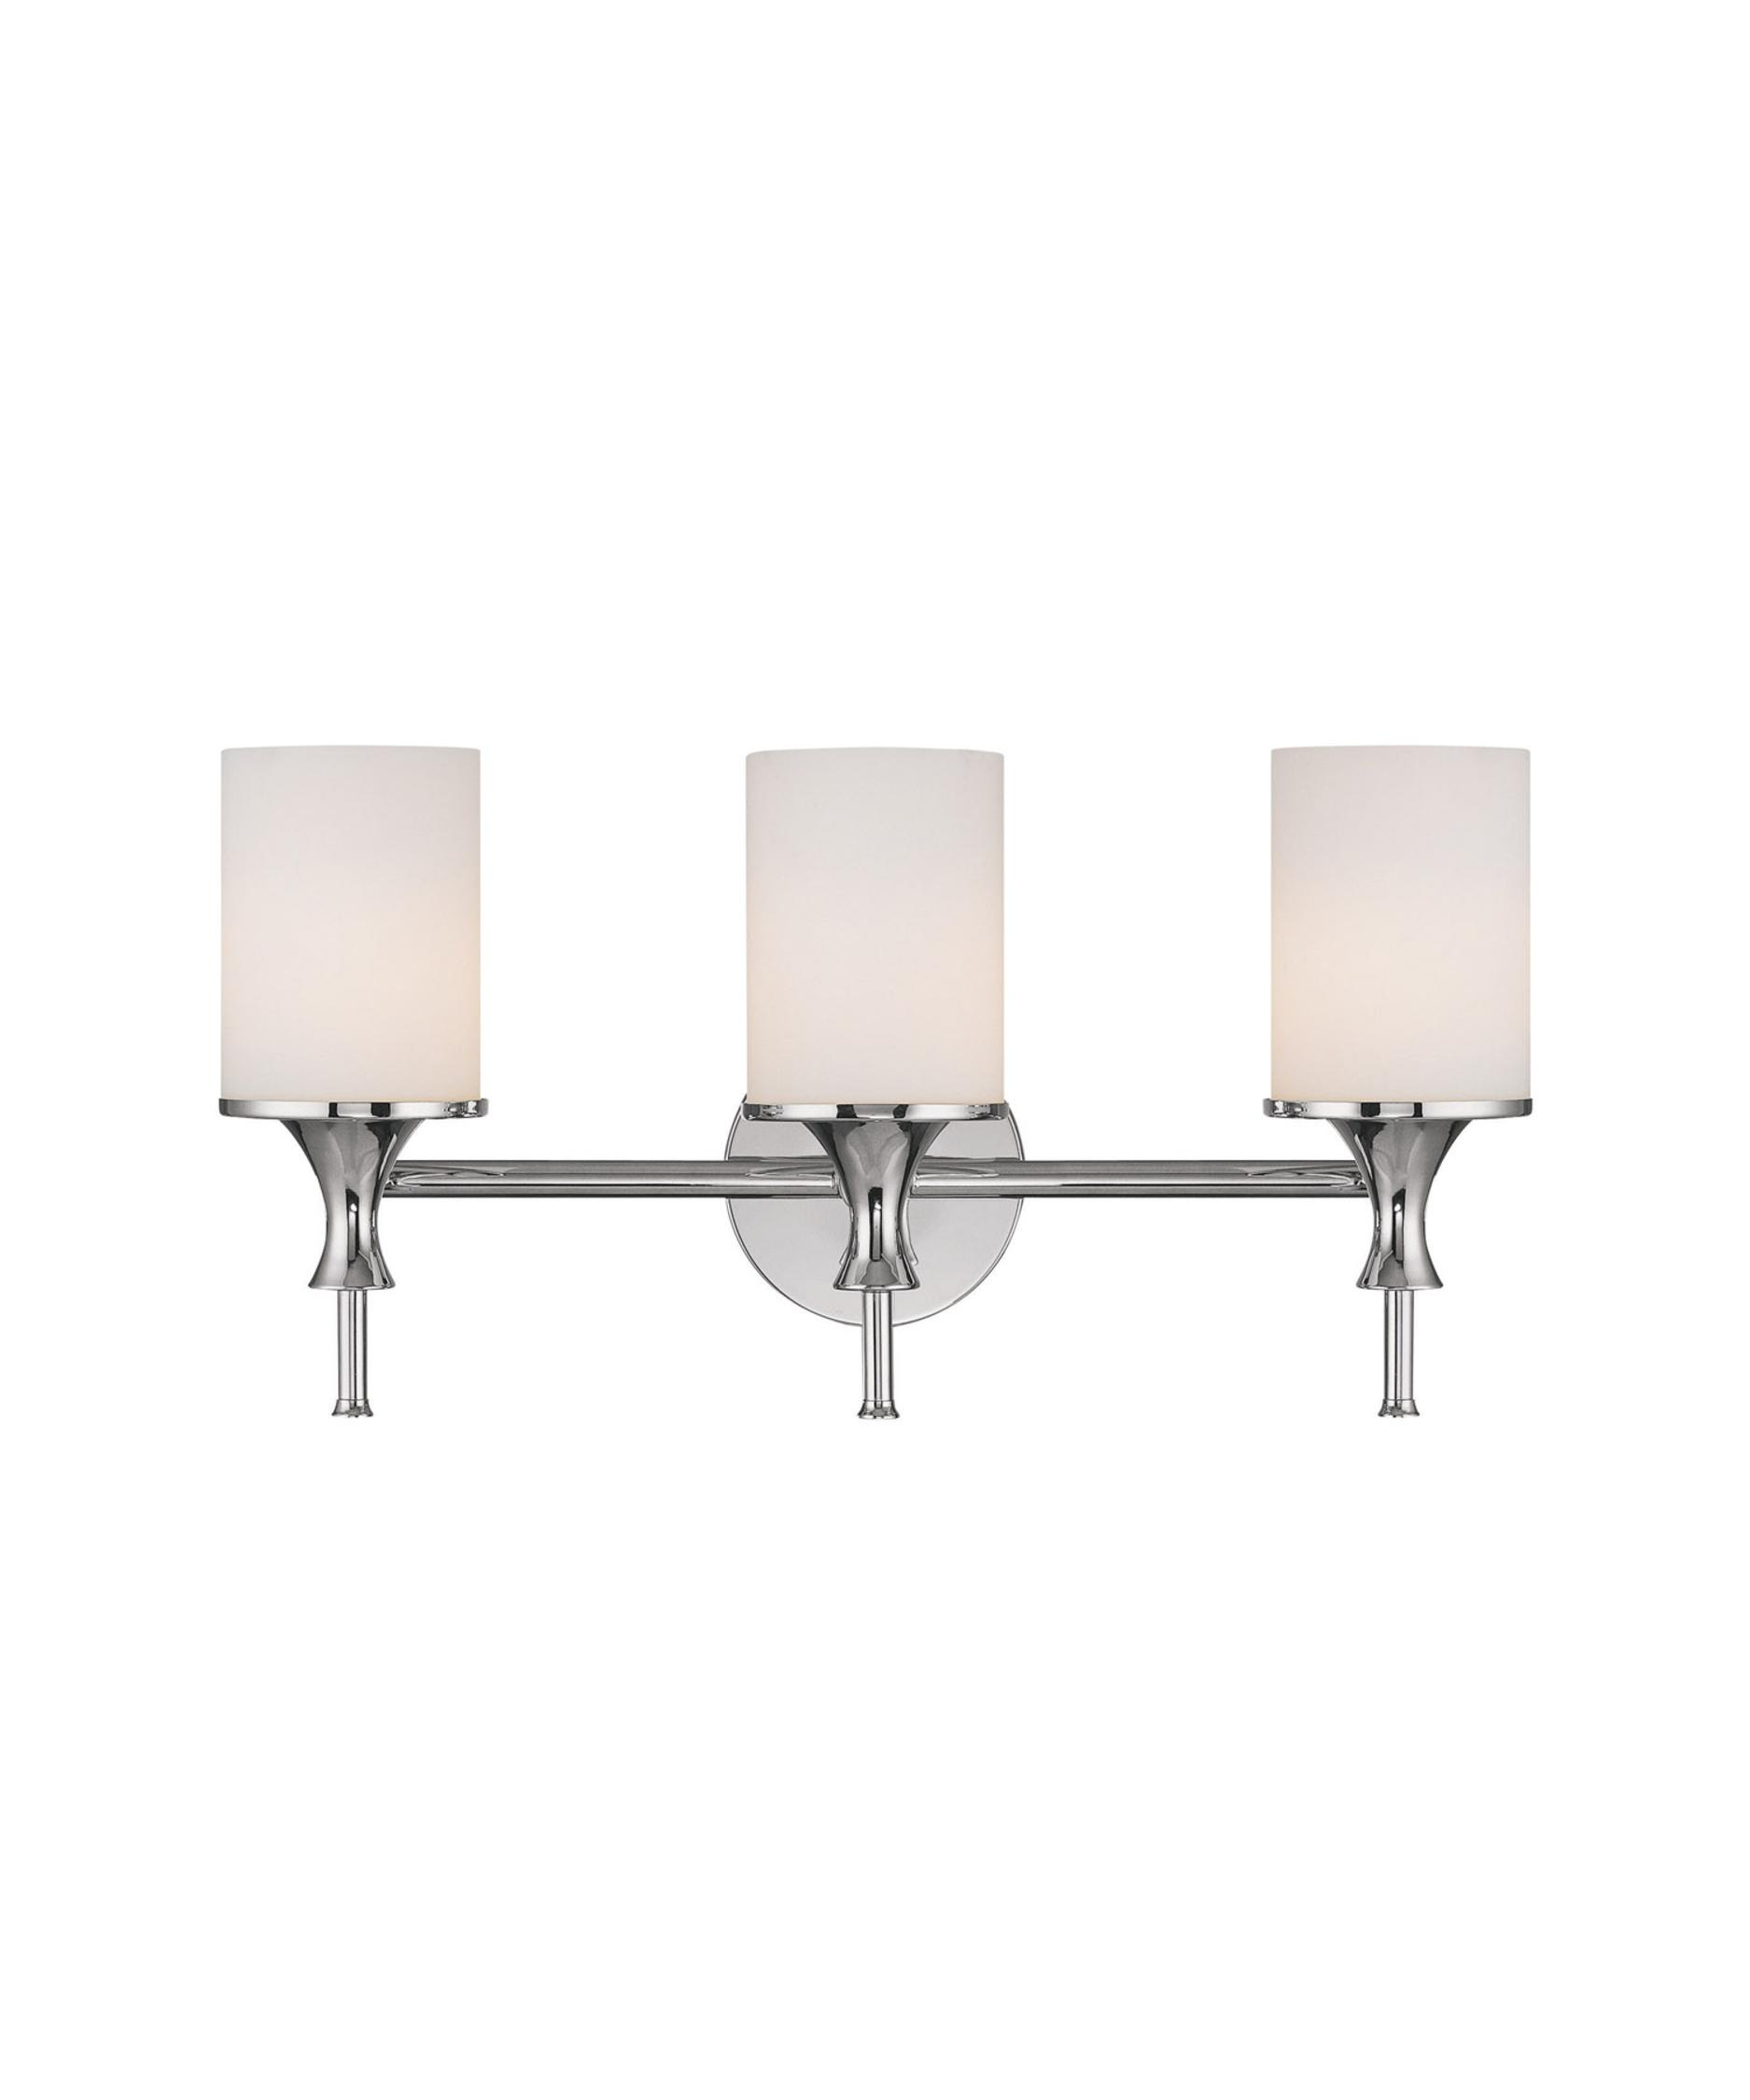 Bathroom Lighting Fixtures Polished Nickel bathroom vanities lighting fixtures. bath and vanity light 45317ch